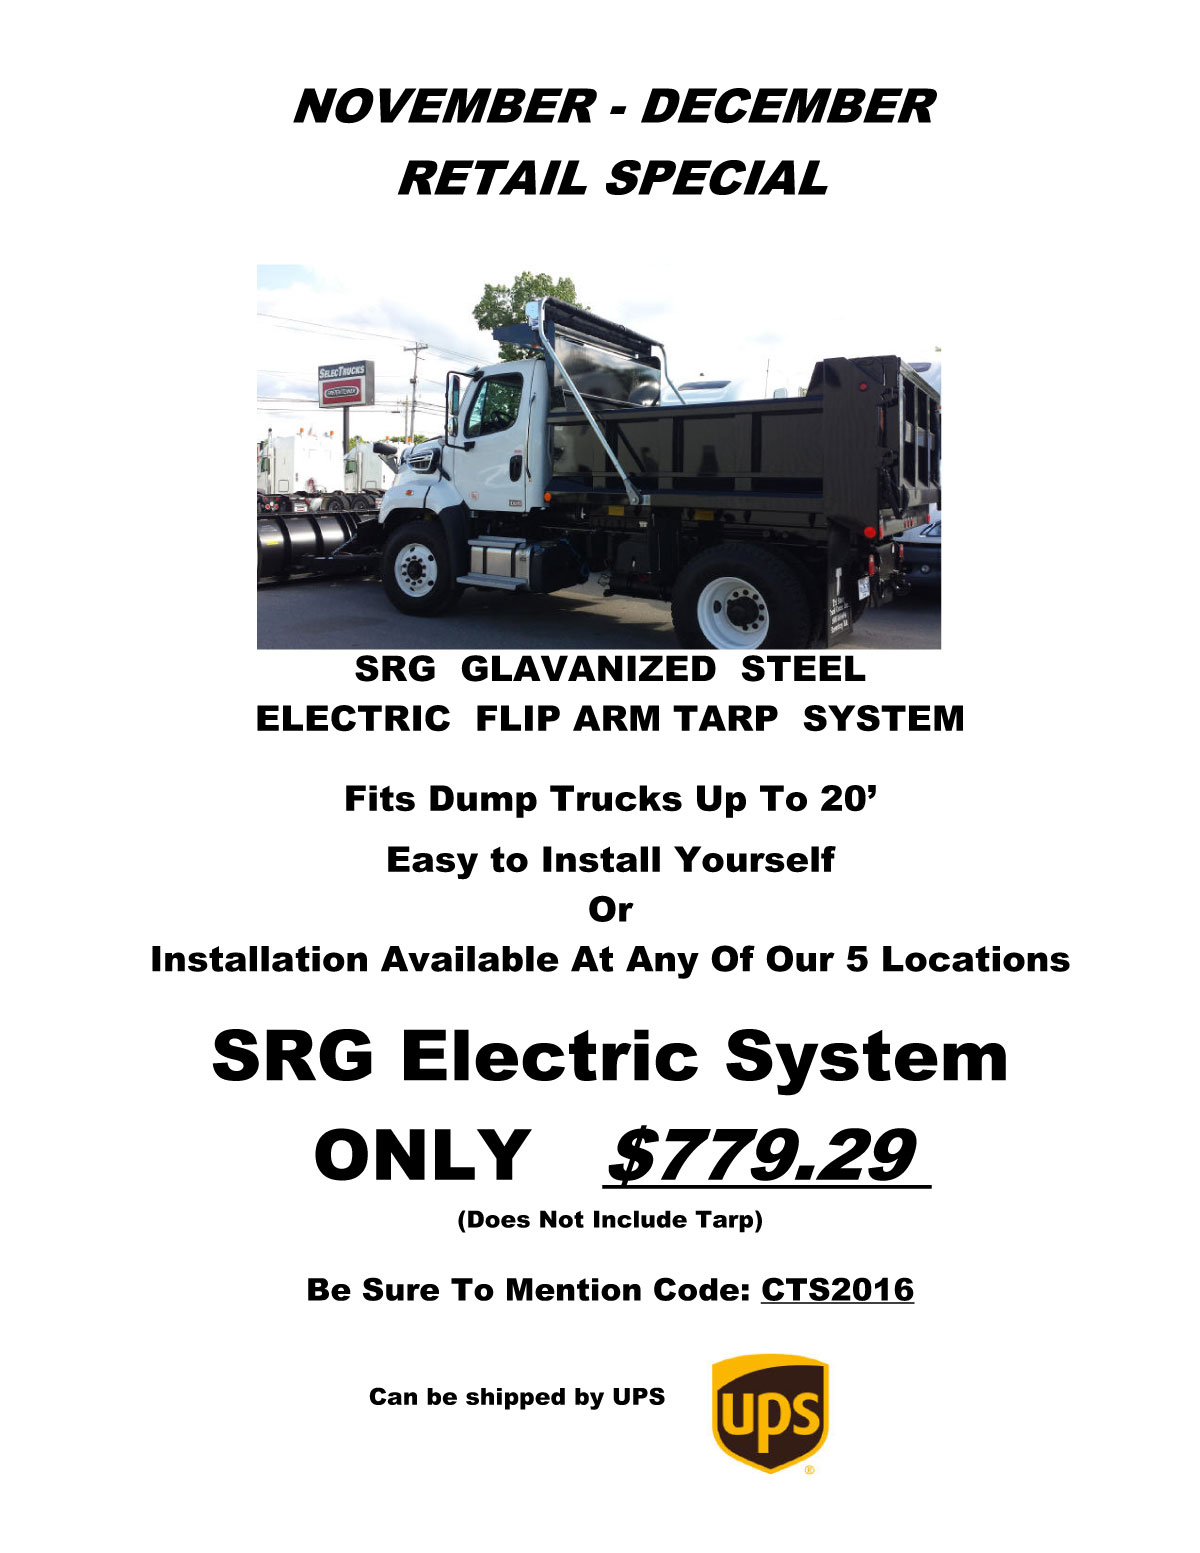 November / December Cramaro Tarp Systems retail specials